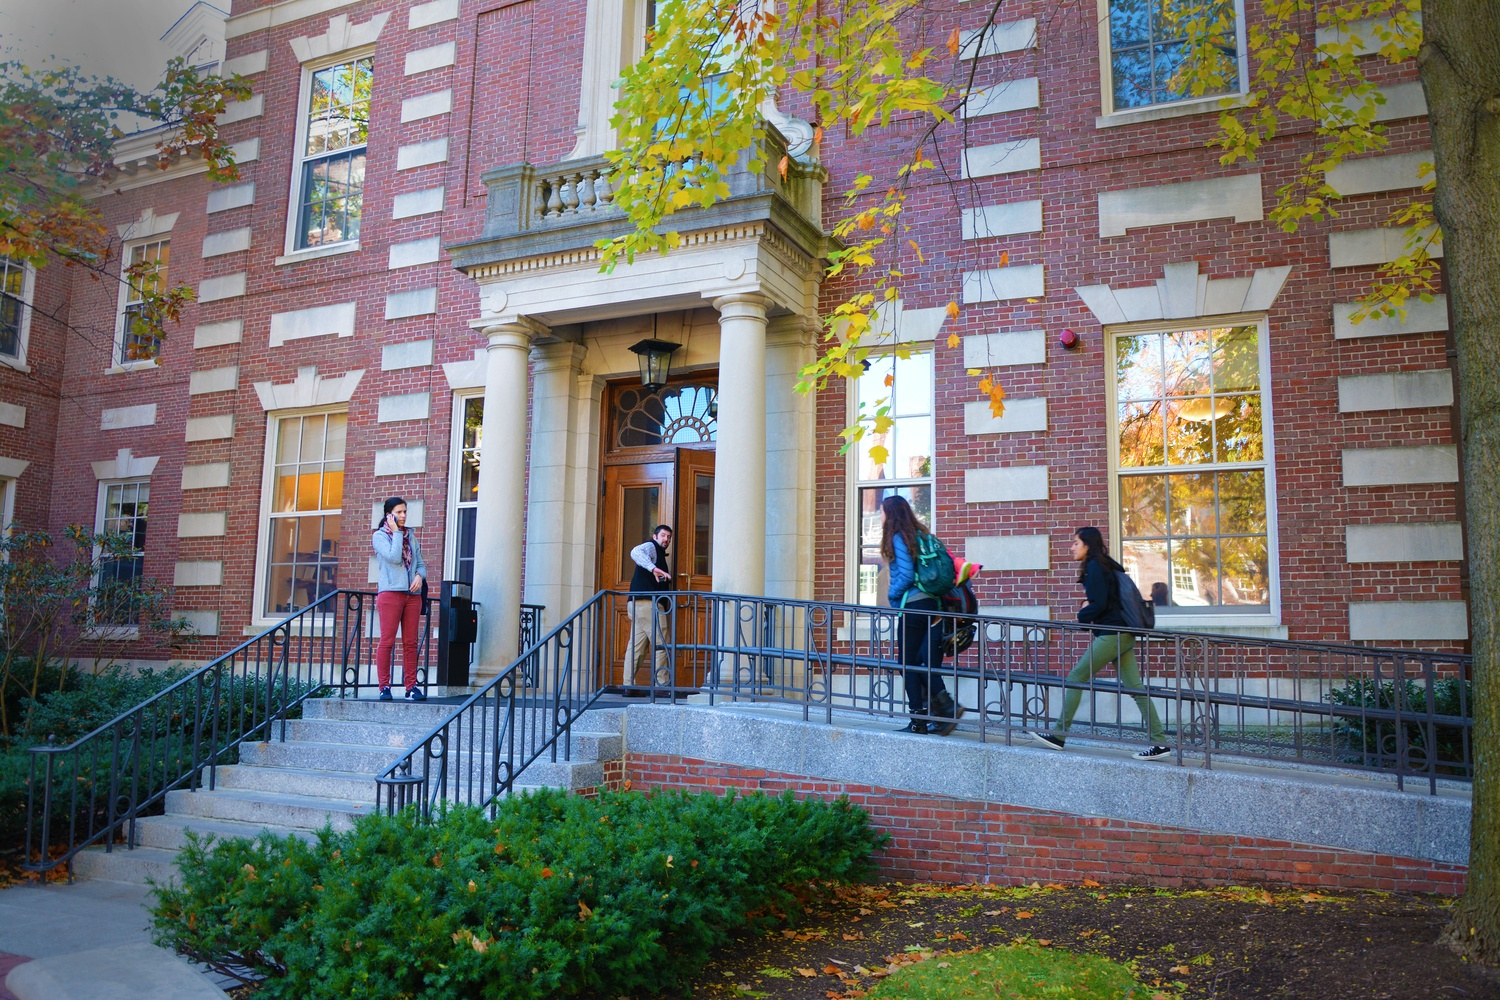 Students and faculty flow in and out of the Barker Center, home to the Humanities Center at Harvard, on a Monday morning.